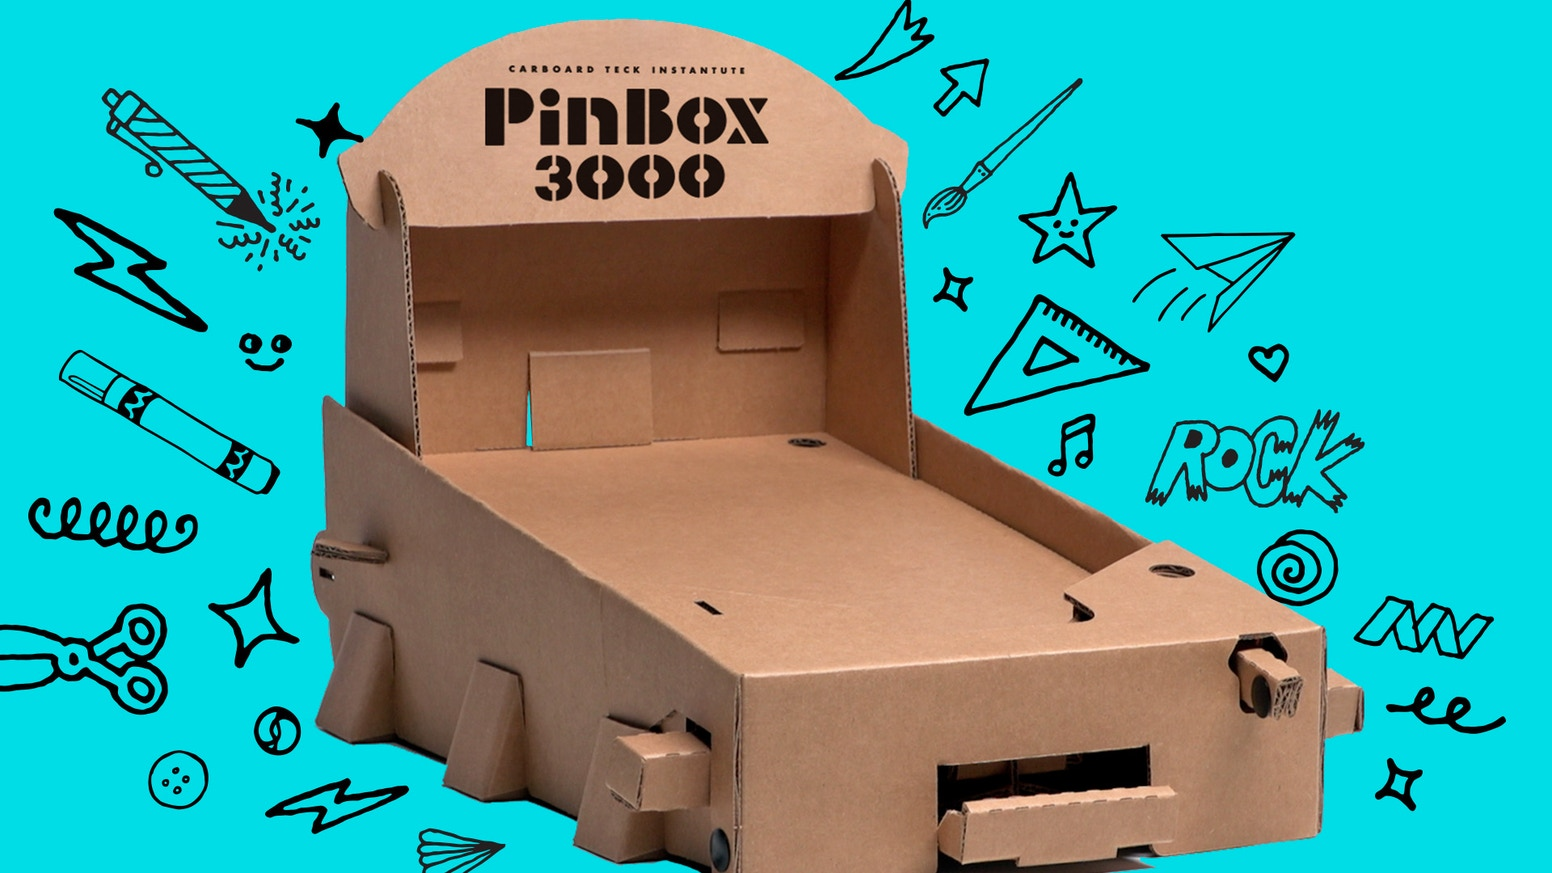 Customizable cardboard tabletop pinball game system and Gamechanger playboard expansions. Tilt the Future!